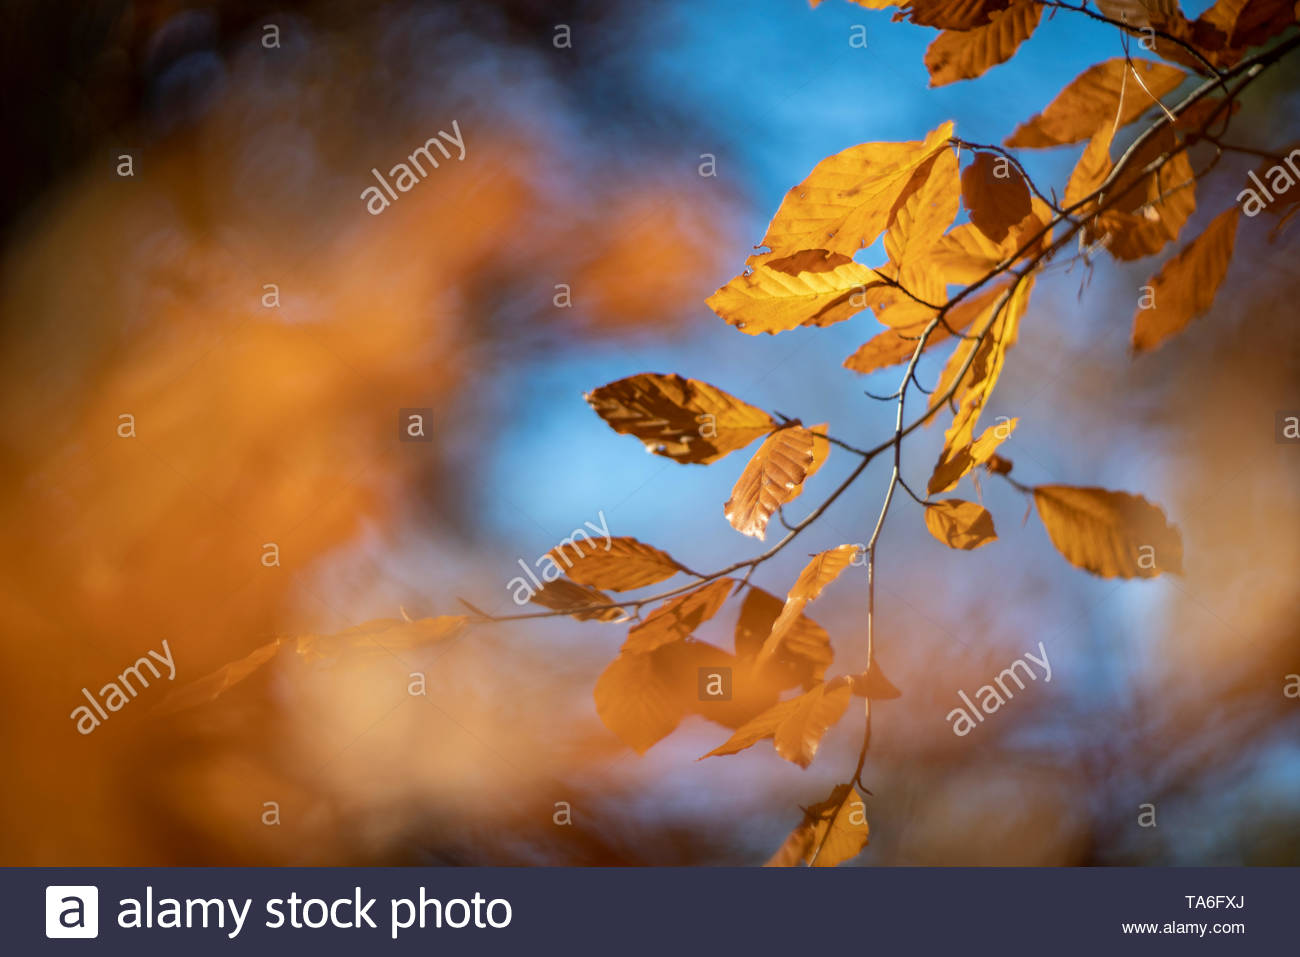 Beech leaves in autumn, photographed with a vintage lens - Stock Image